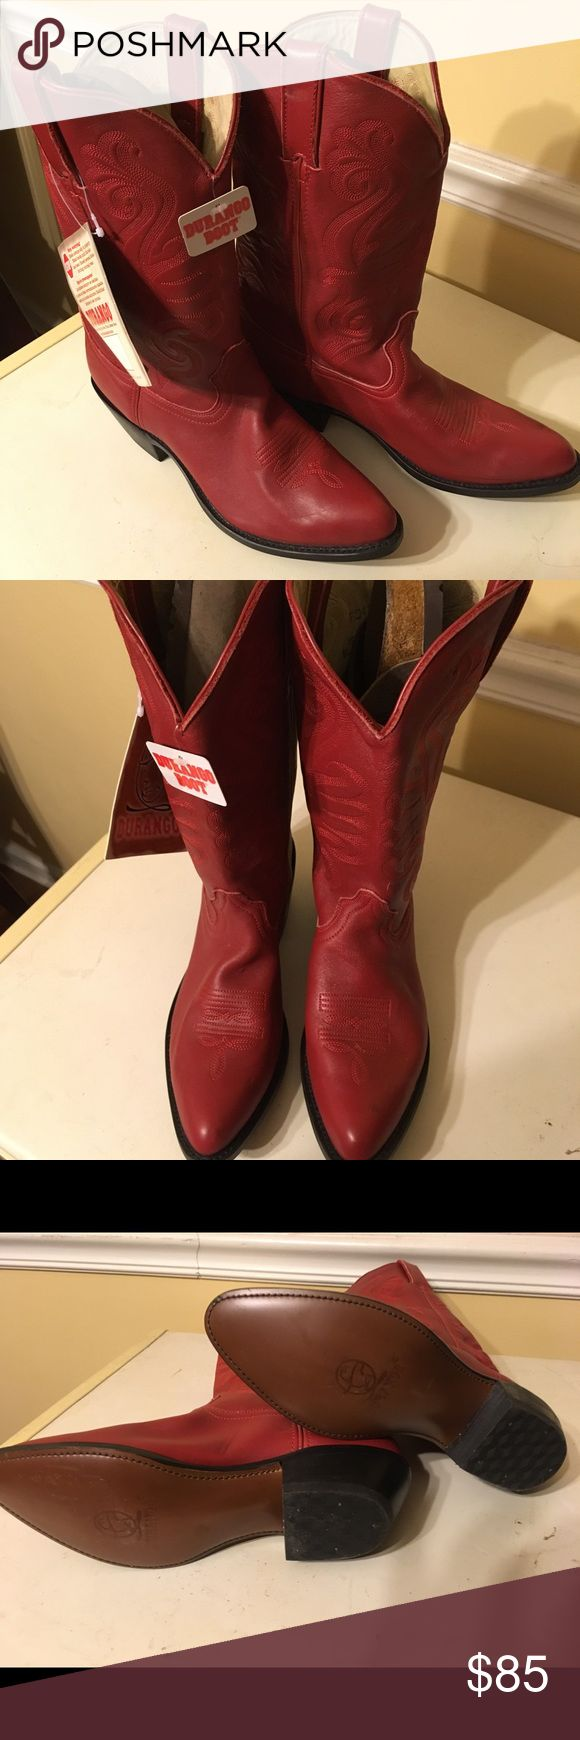 """Women's 8.5 Cowboy boot Durango boots style number RD4105, new with tags! Women's size 8.5 red cowboy cowgirl boots. Purchased last year for a specific event and never got a chance to wear. Still selling in stores for $130. Great all year around! **slight discoloration on the toe of one boot, obtained when in storage.  Women's Durango 11"""" Western Work Boots RD4105 Cushion Insole with Flex Forepart Taped Side Seams Cowgirl Heel Leather Shaft Lining Leather Upper Hand Stained Composition…"""